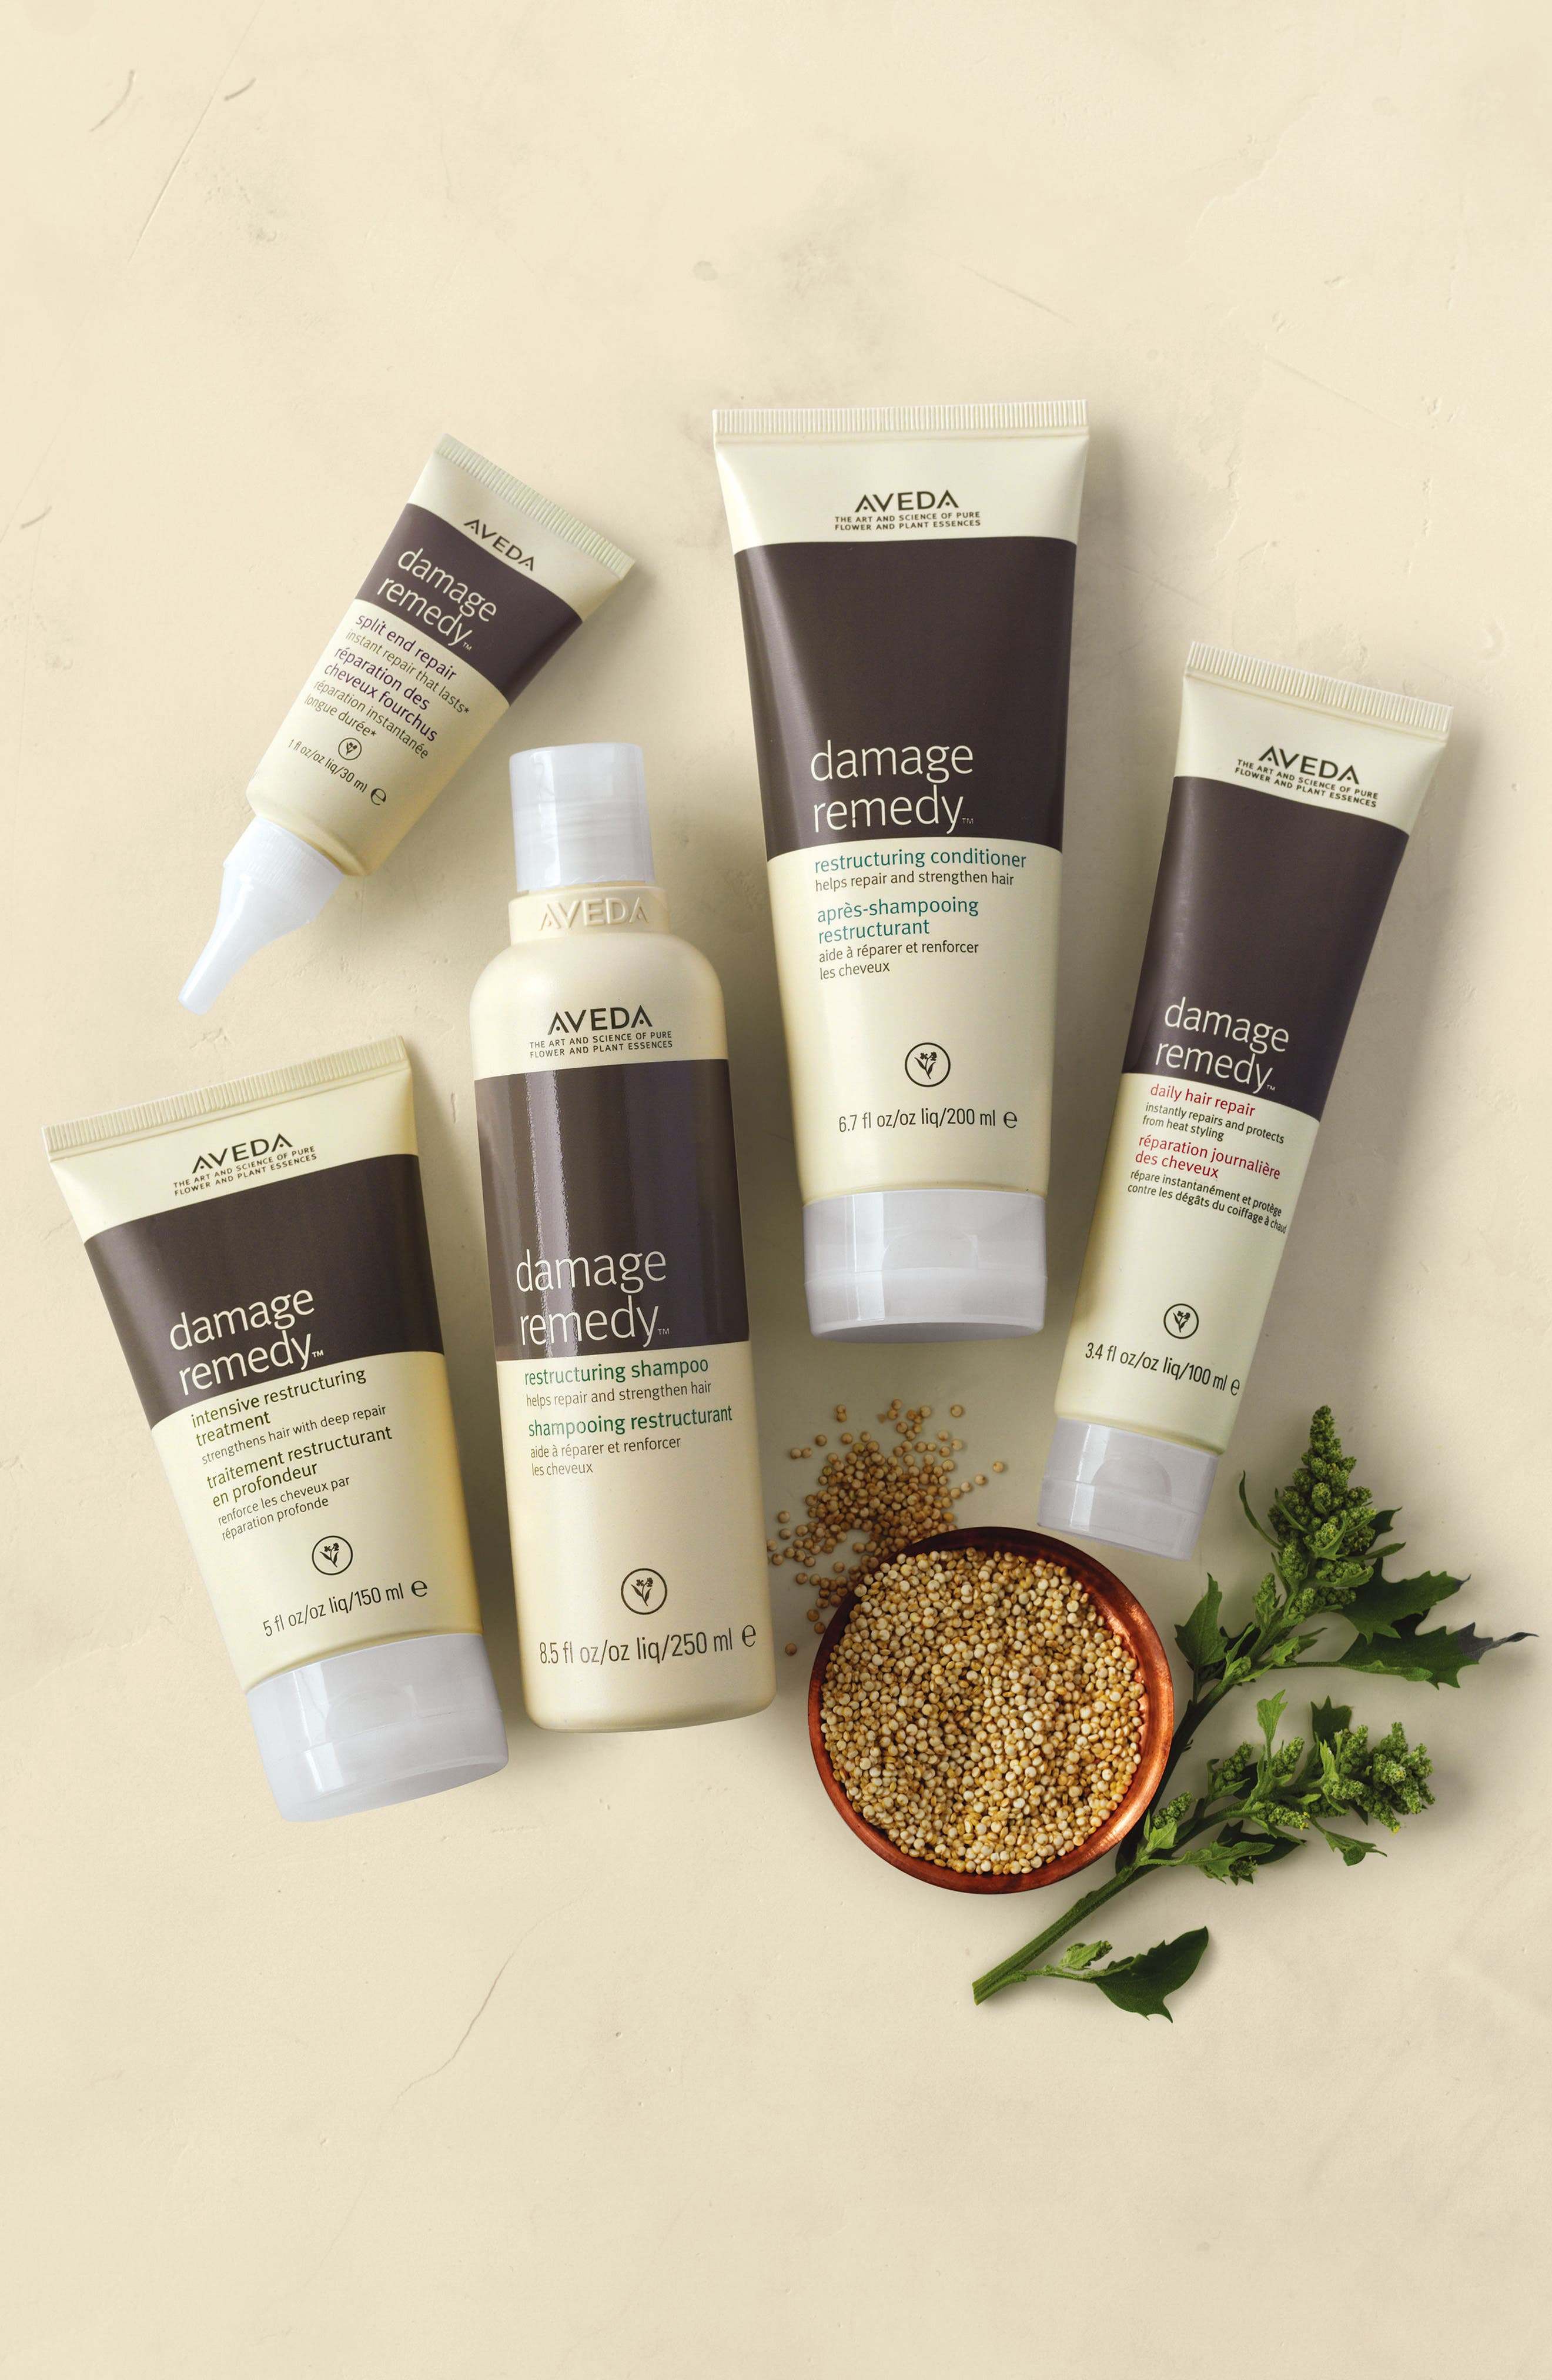 Alternate Image 2  - Aveda 'damage remedy™' Intensive Restructuring Treatment